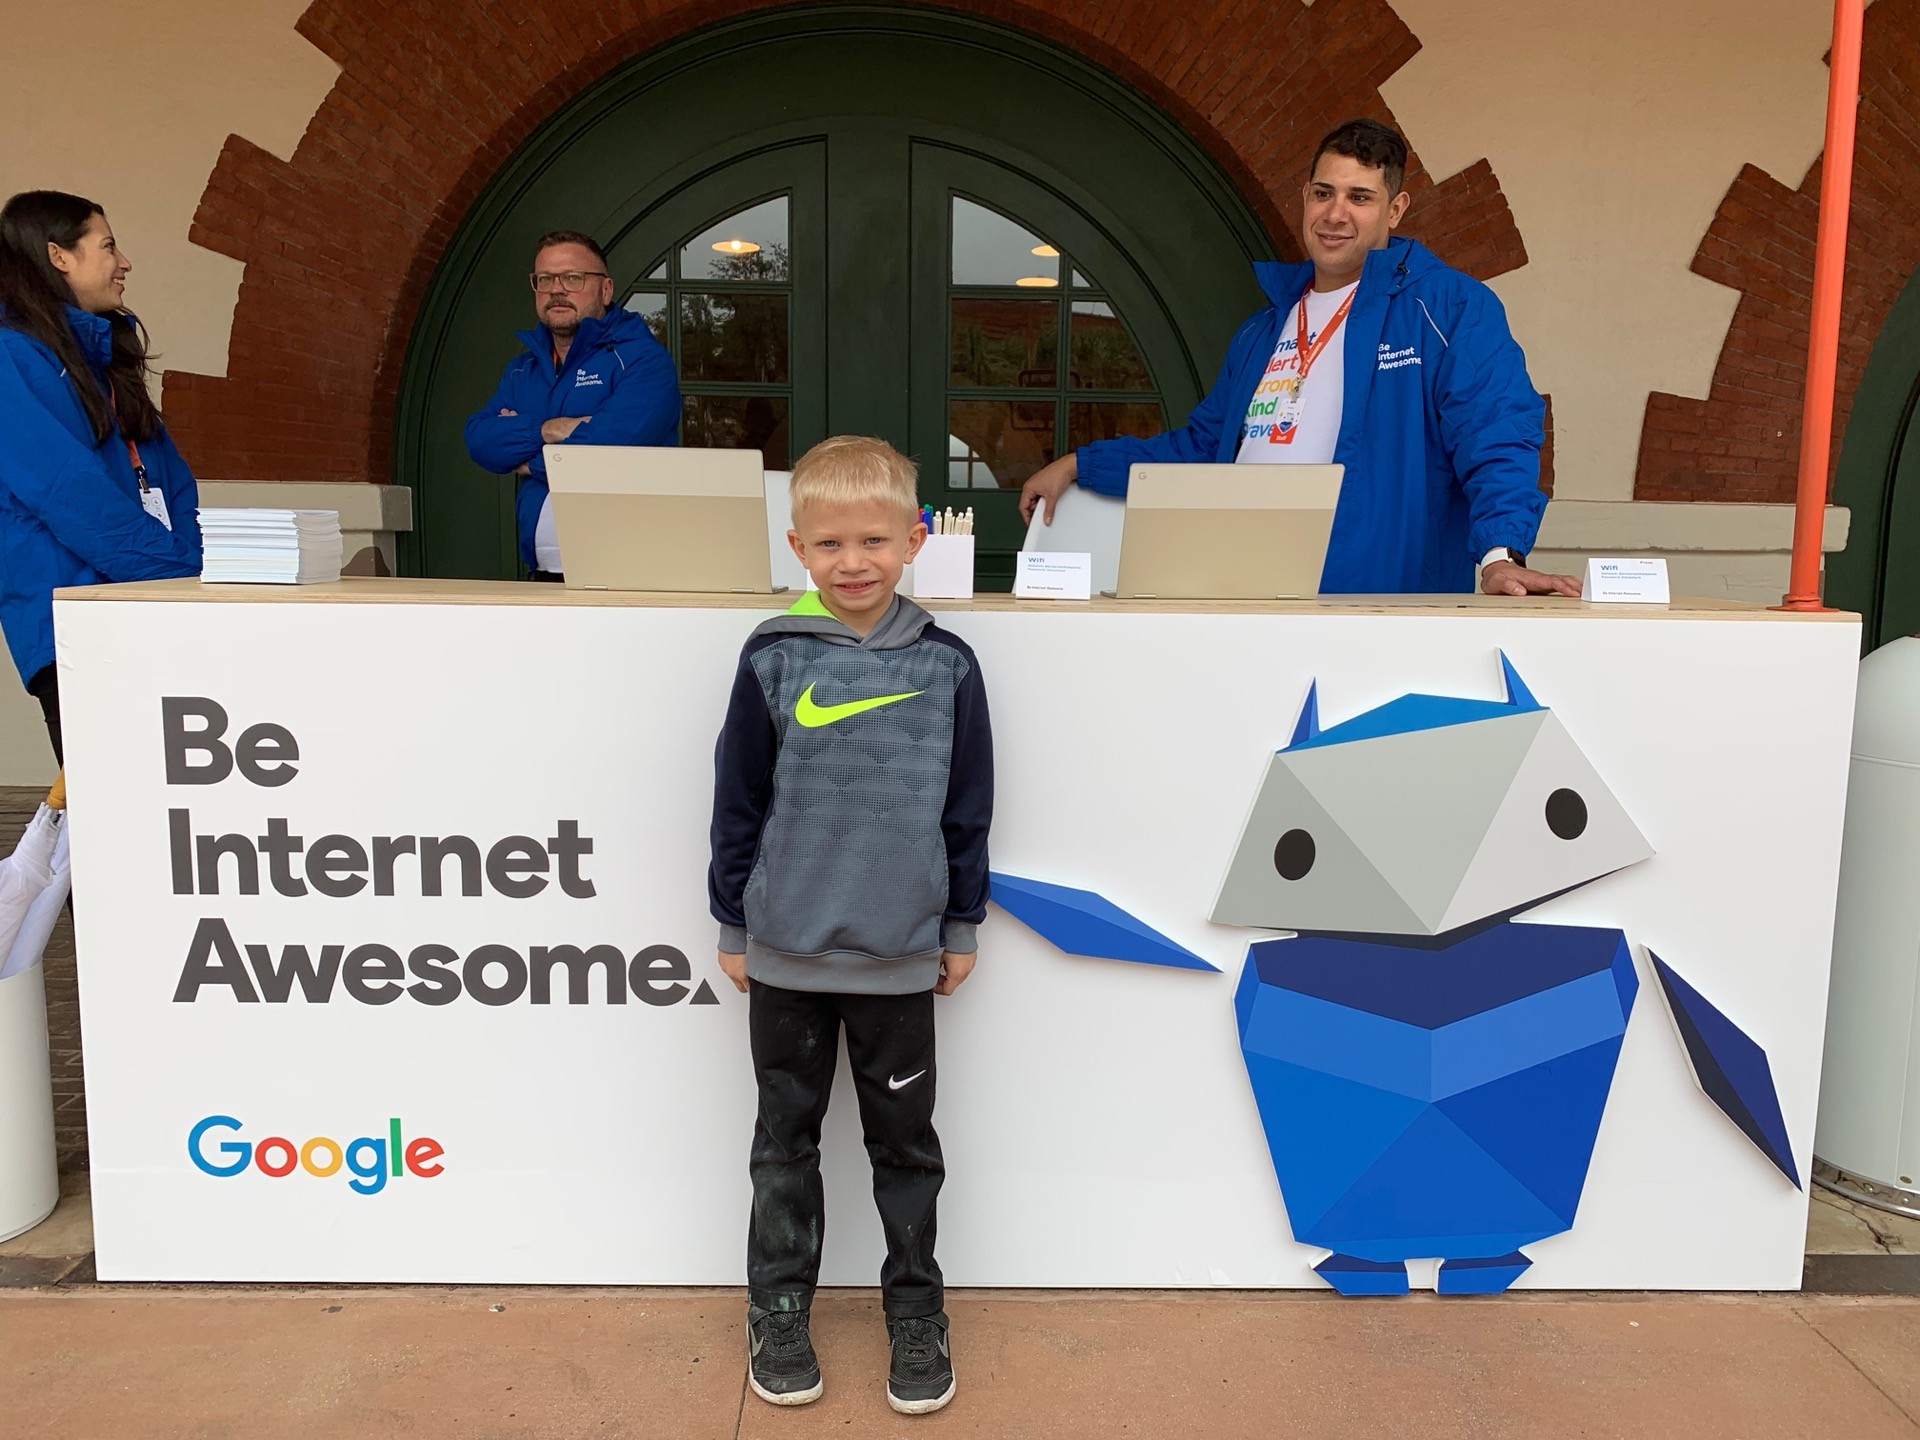 be internet awesome google